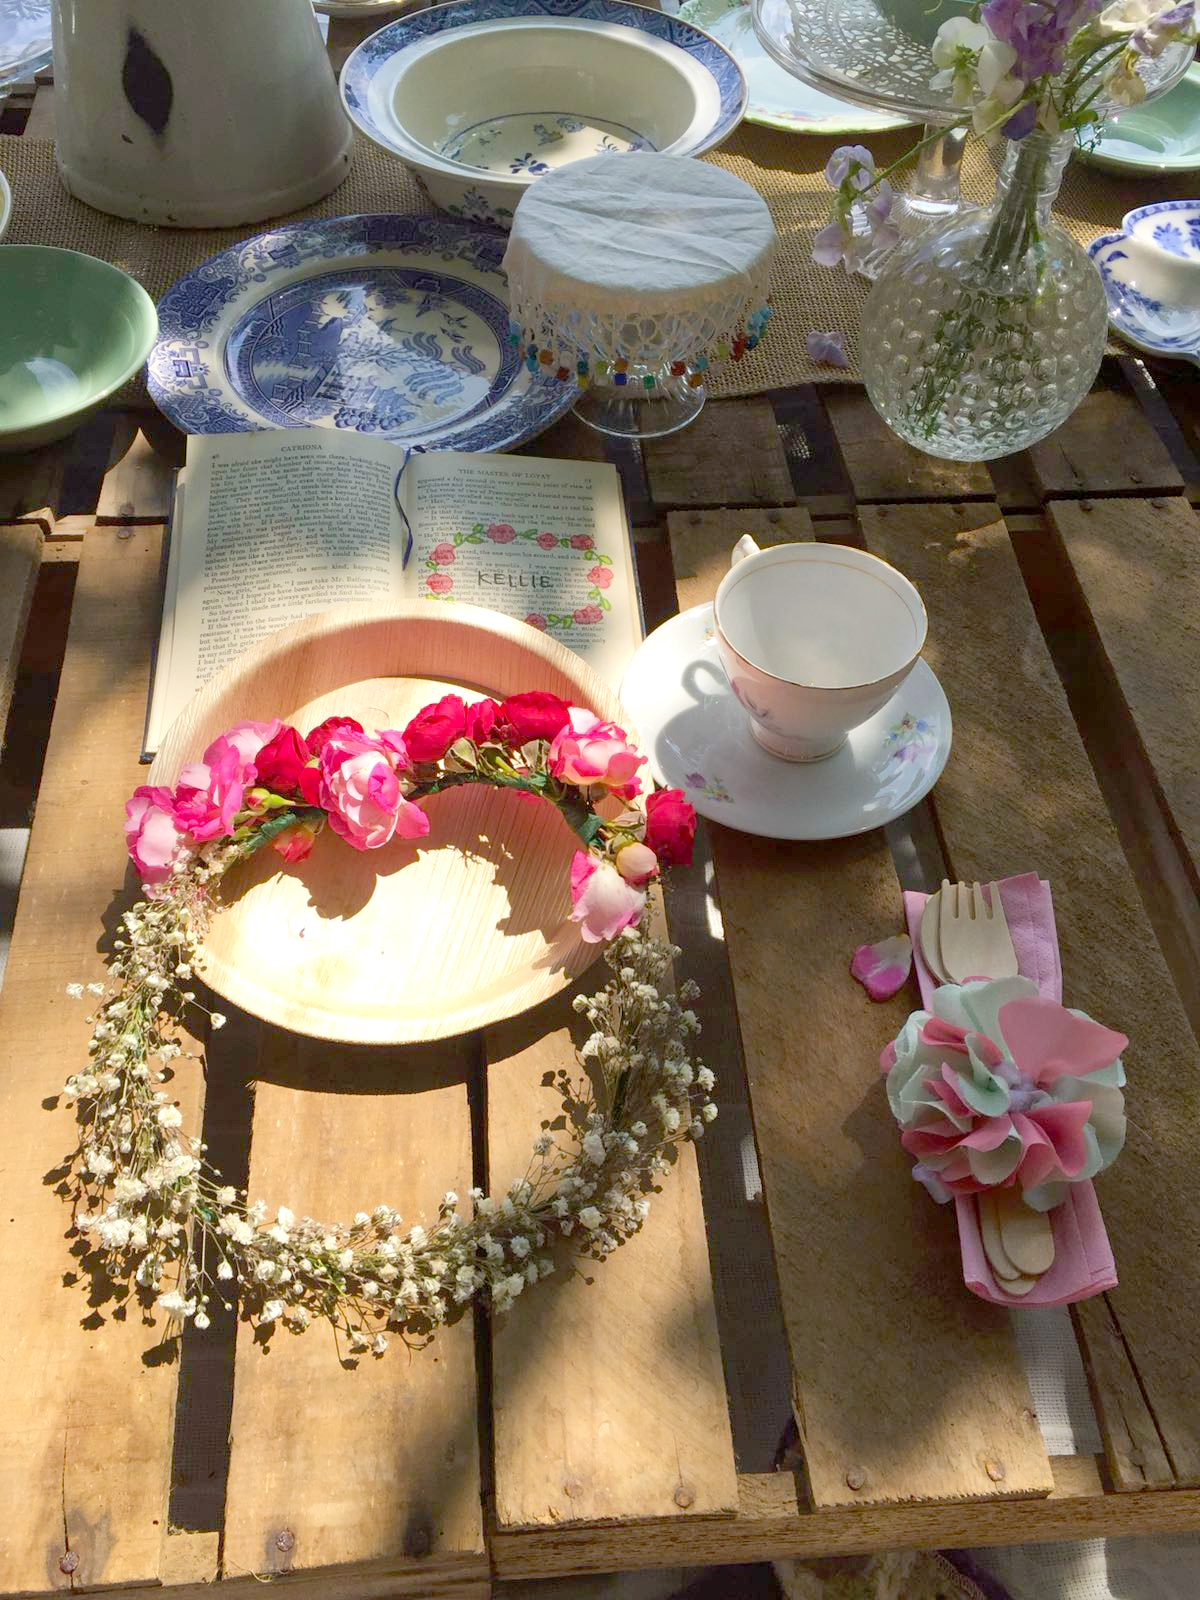 Hen Do Flower Crown and Place Setting with Tea Cup and place name and picnic wares